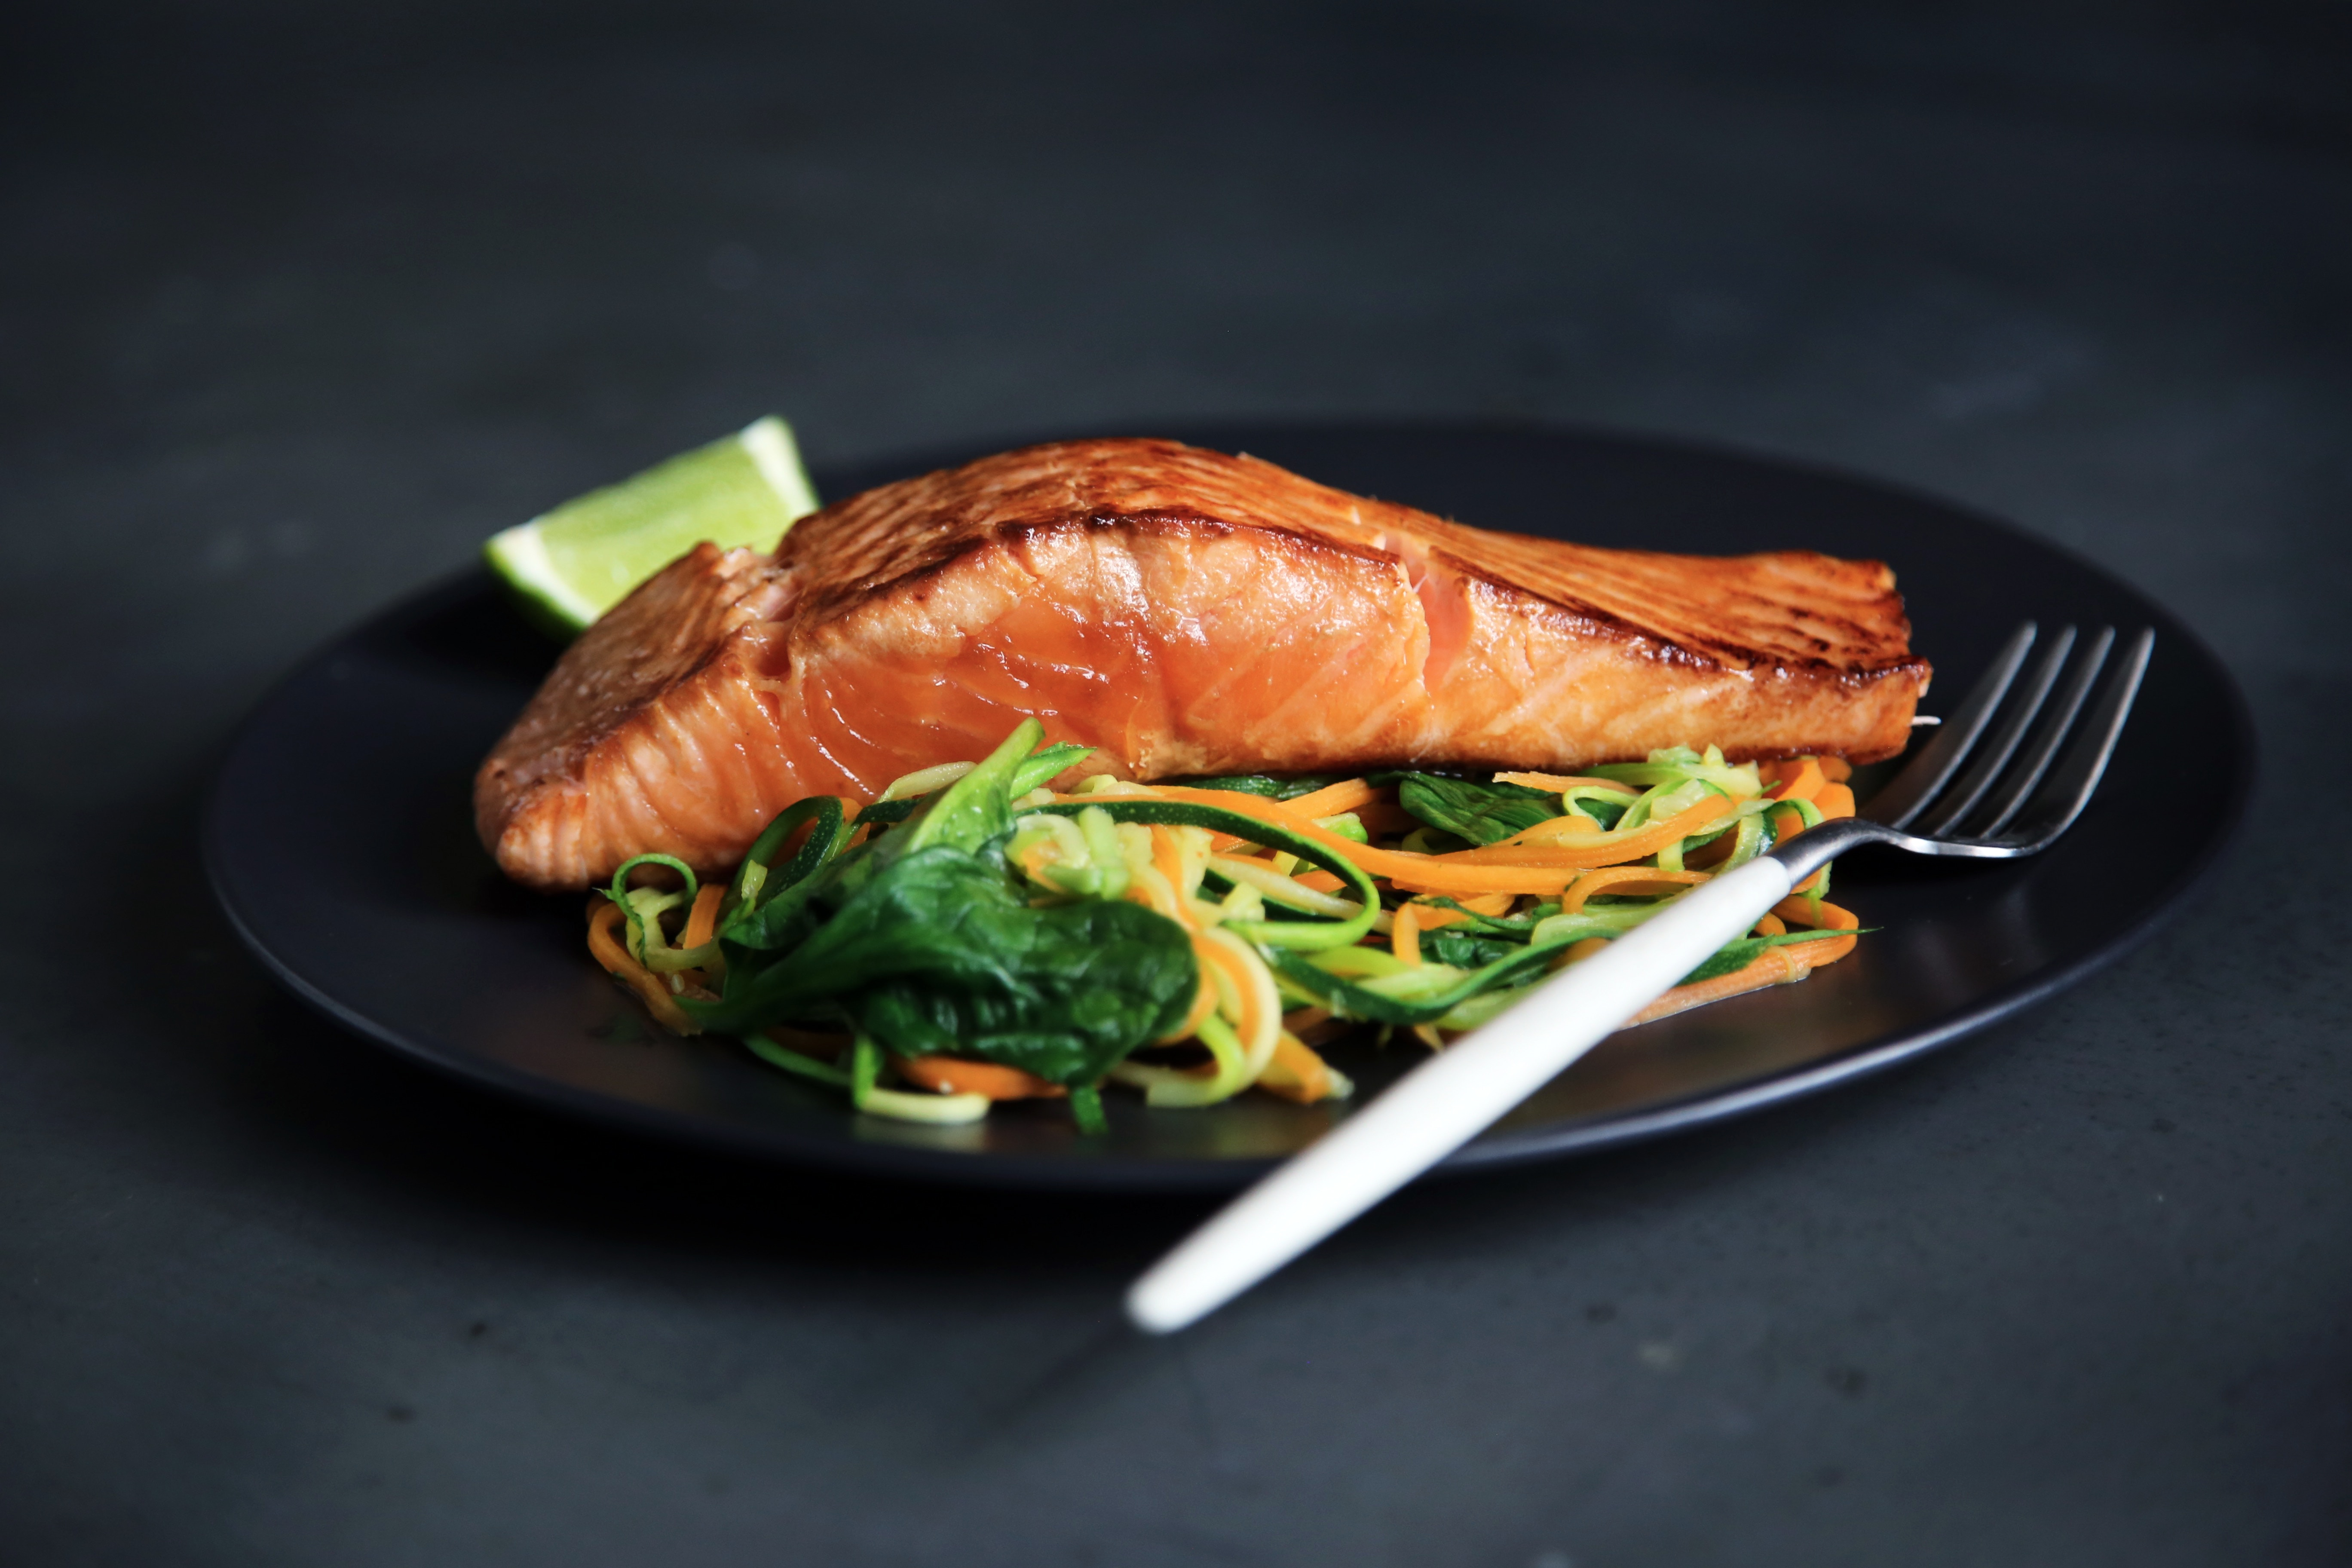 Hair is made from keratin; choose oily fish such as salmon for healthy hair